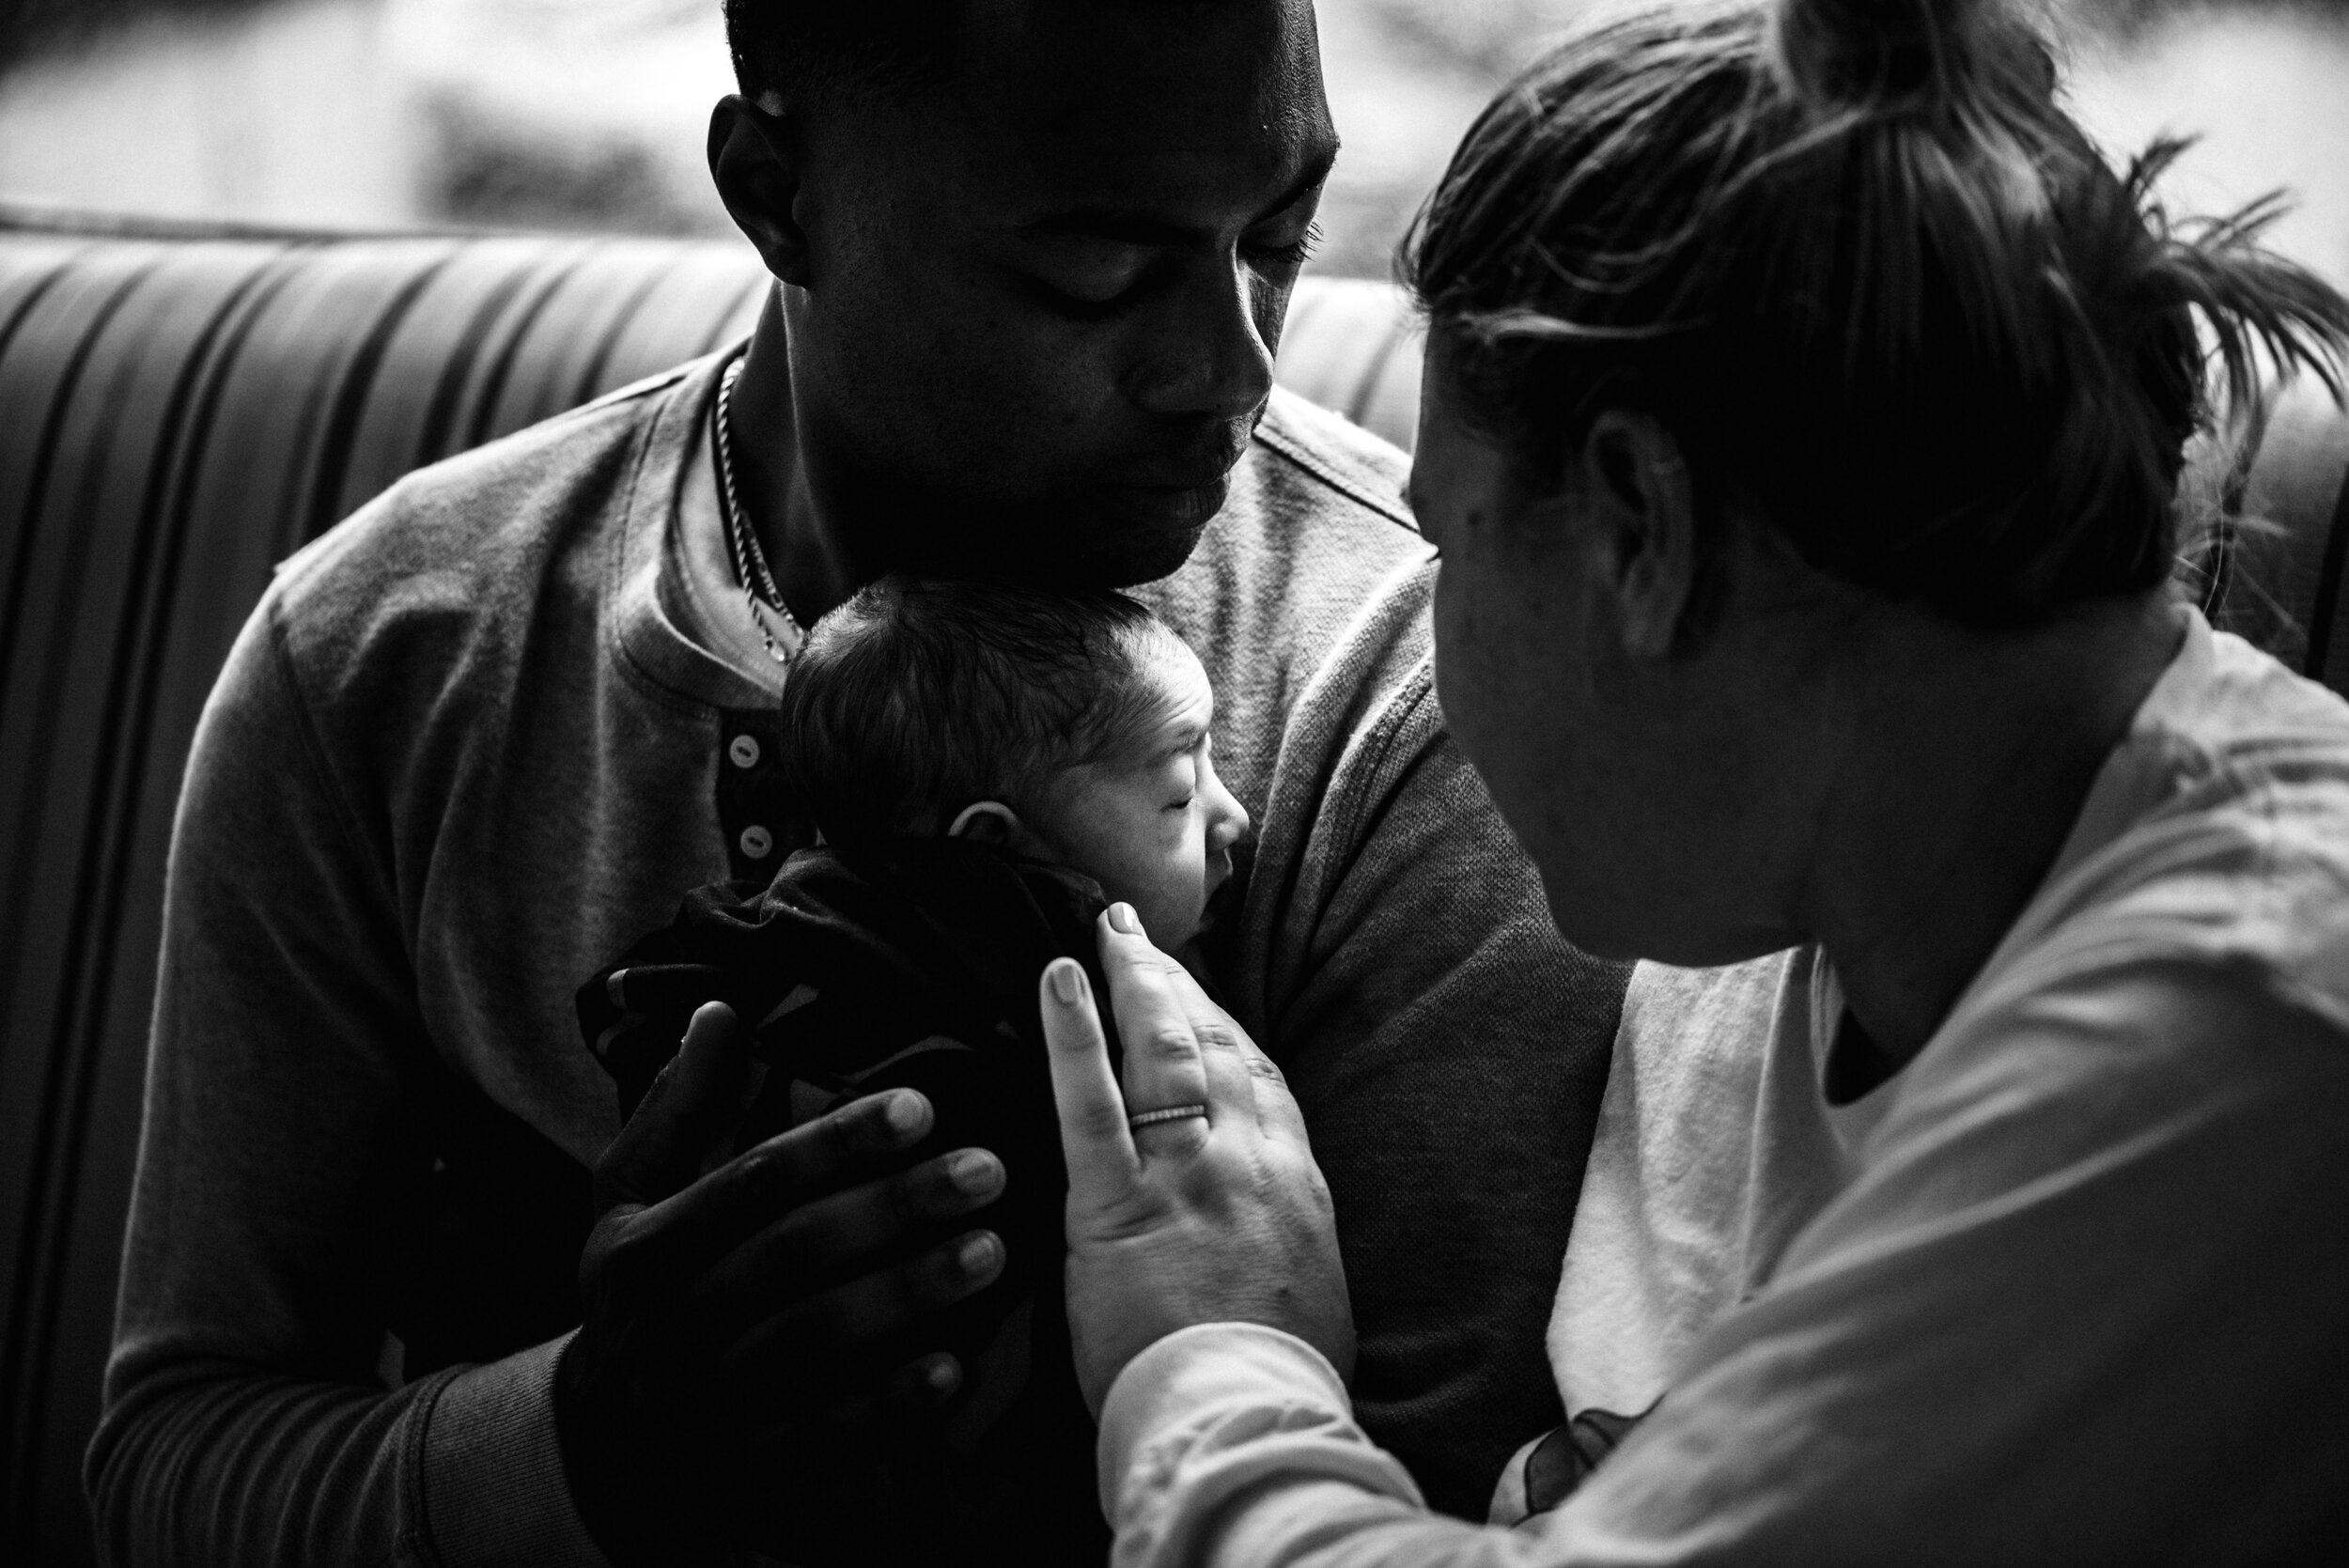 Gather Birth Cooperative- Photography and Doula Support -September 12, 2019-133138.jpg